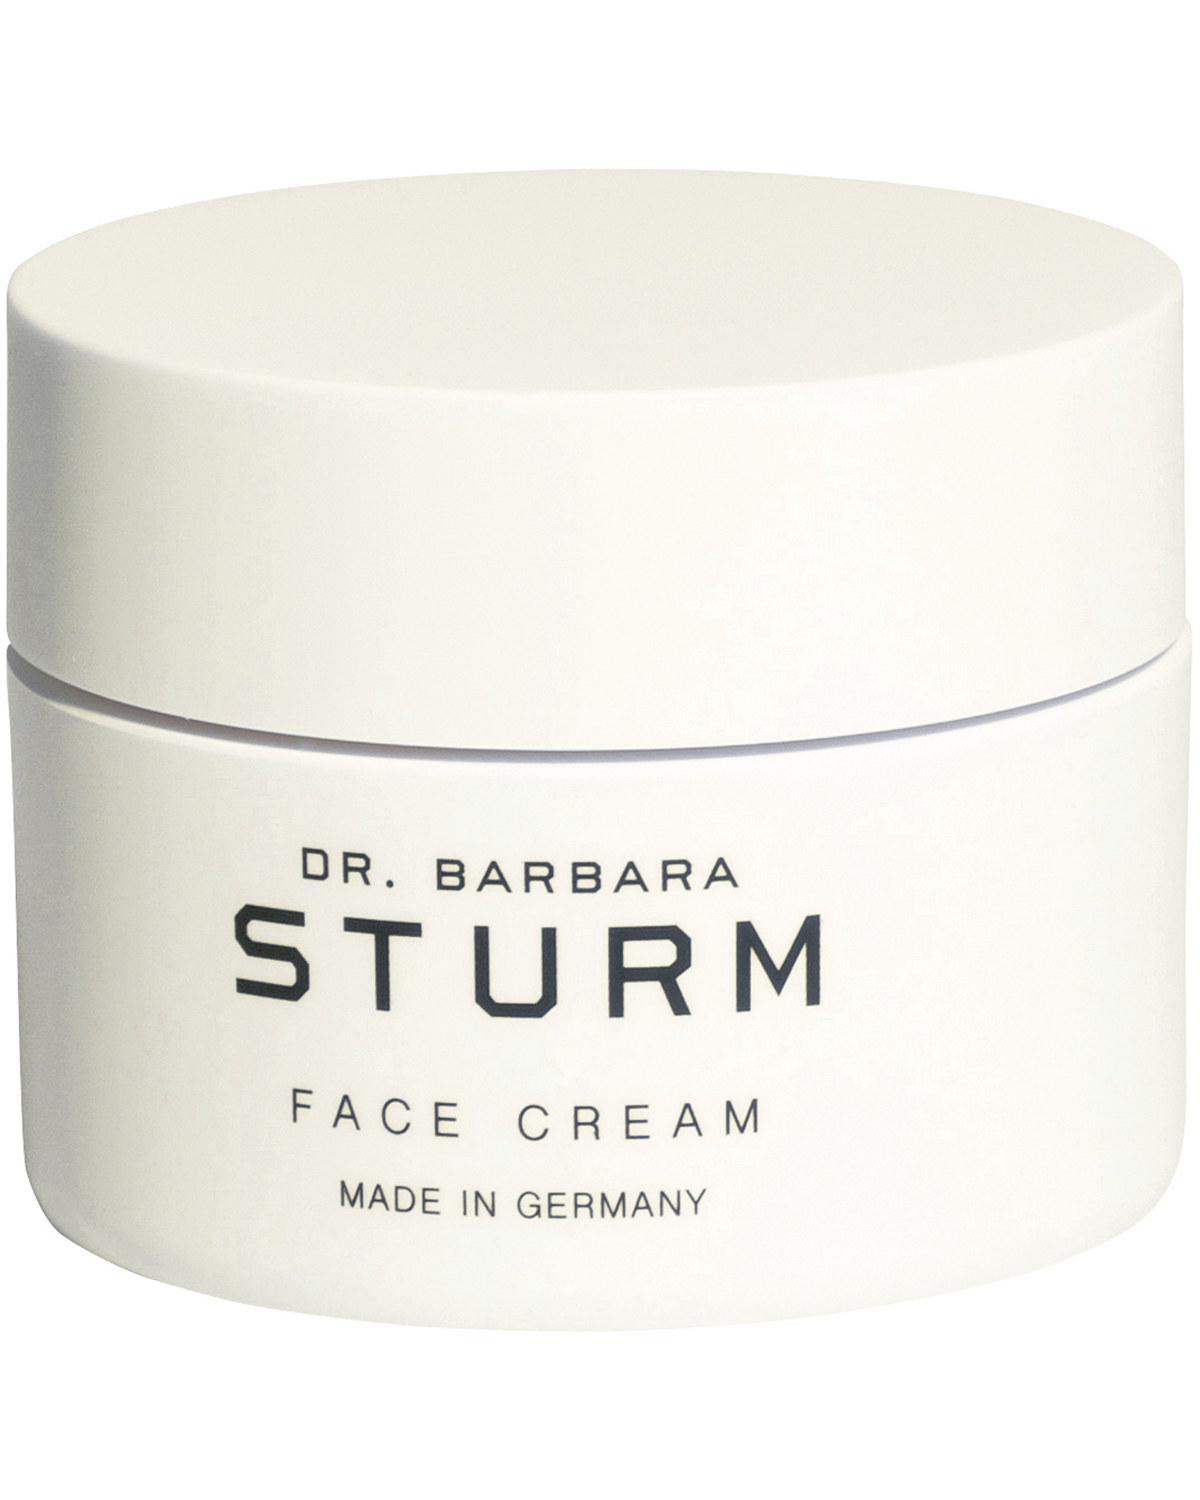 dr barbara sturm face cream 50 ml lodenfrey. Black Bedroom Furniture Sets. Home Design Ideas